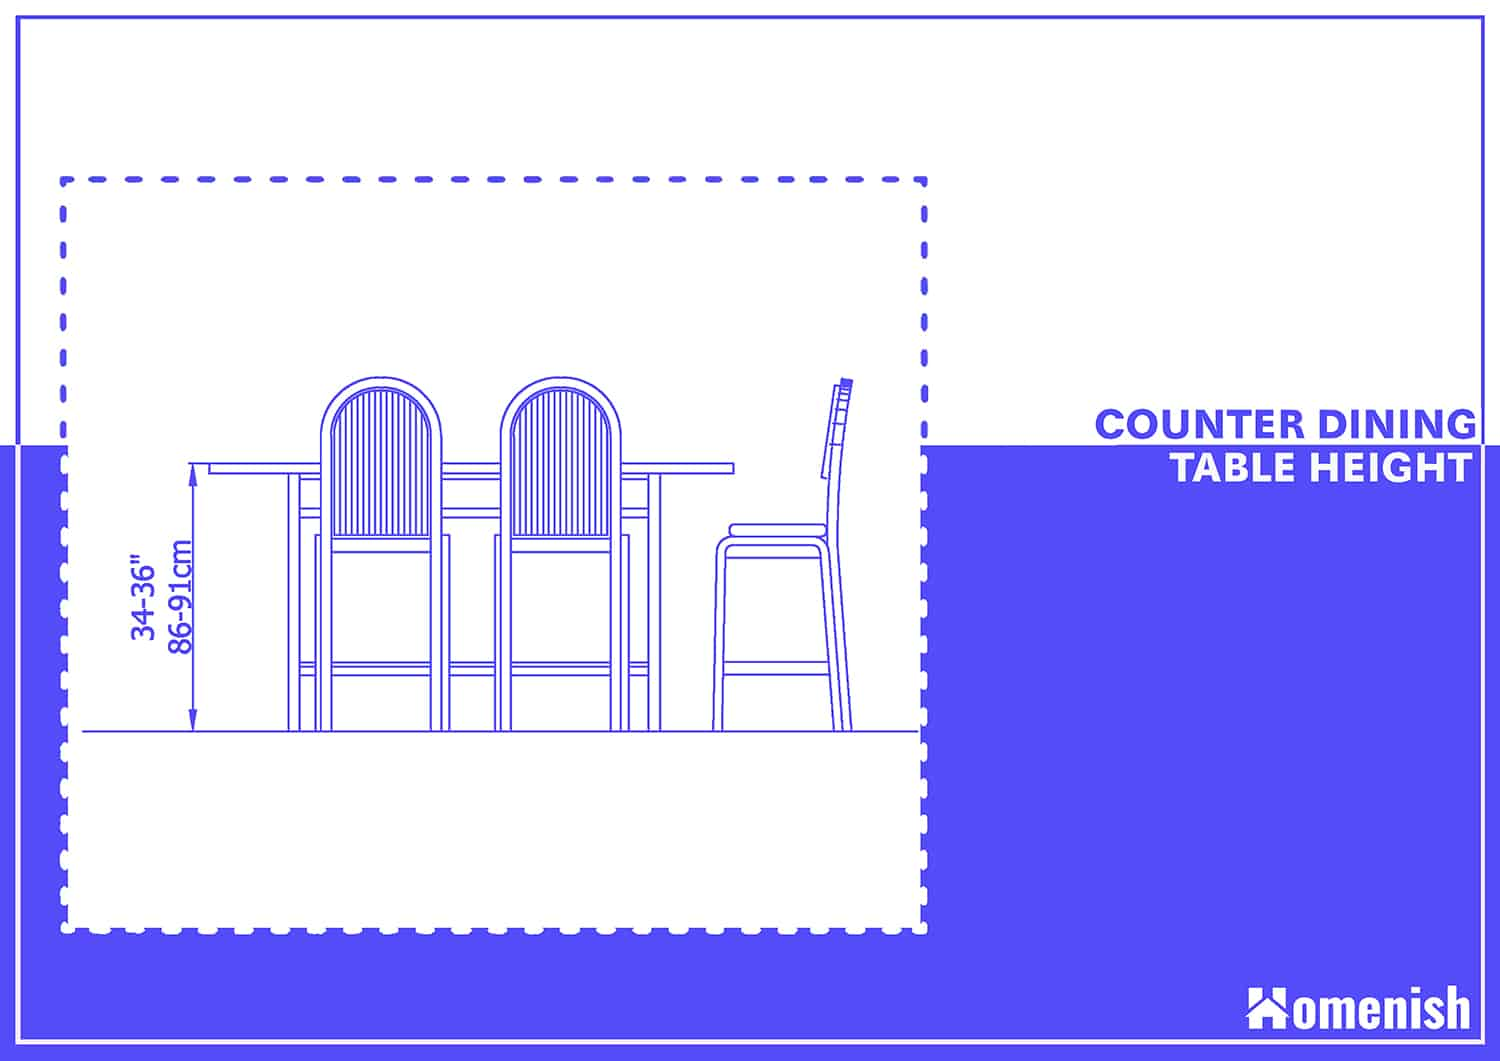 Counter Dining Table Height